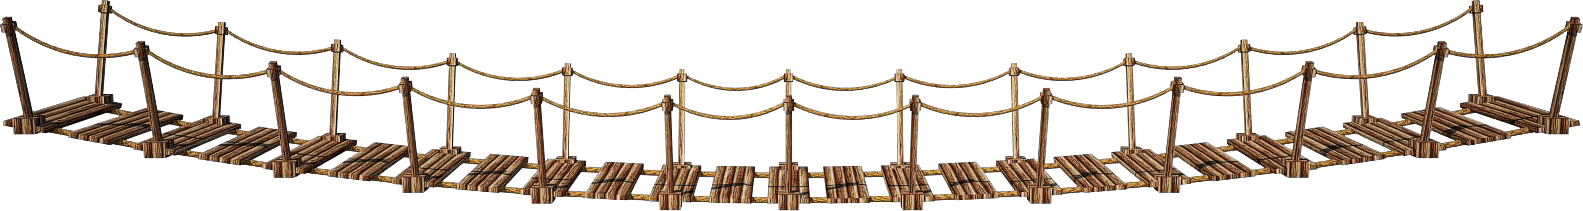 Rope clipart battle rope. Suspension bridge png transparent